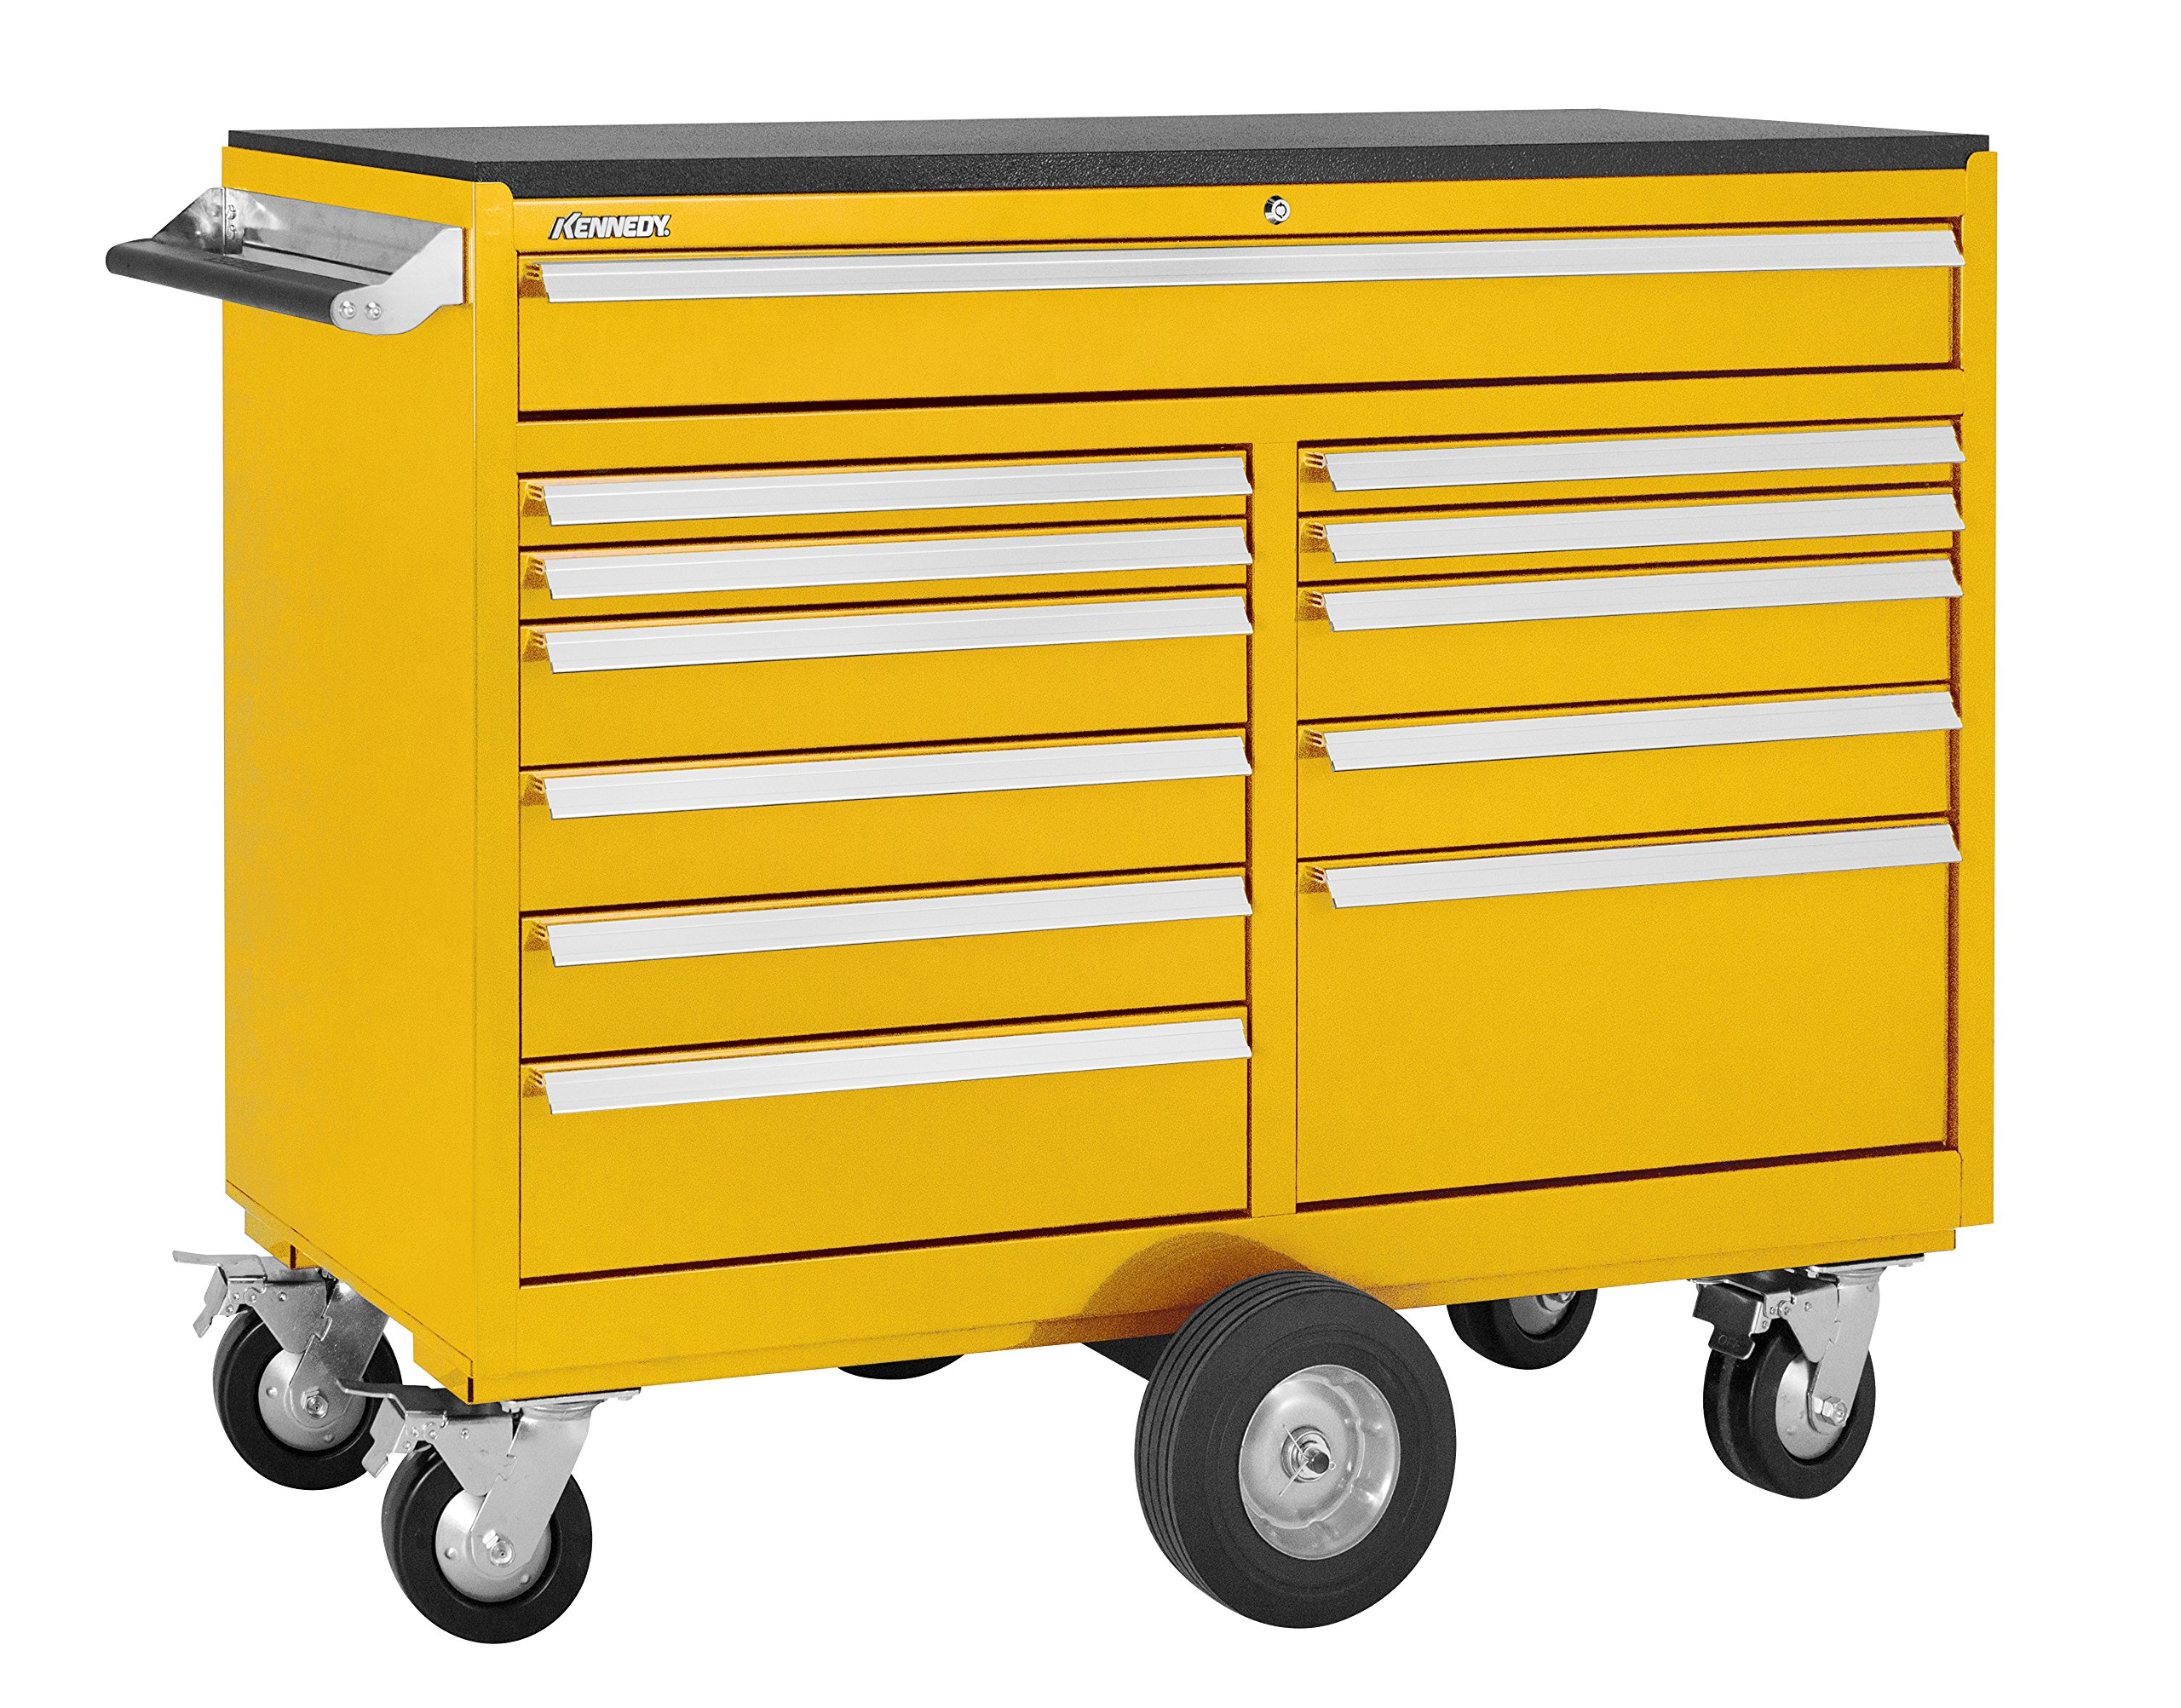 Kennedy Manufacturing 5300MPYW 53'' 12-Drawer Maintenance Pro Double-Bank Rolling Tool Cabinet, Workstation with Chest and Wheels, Industrial Yellow